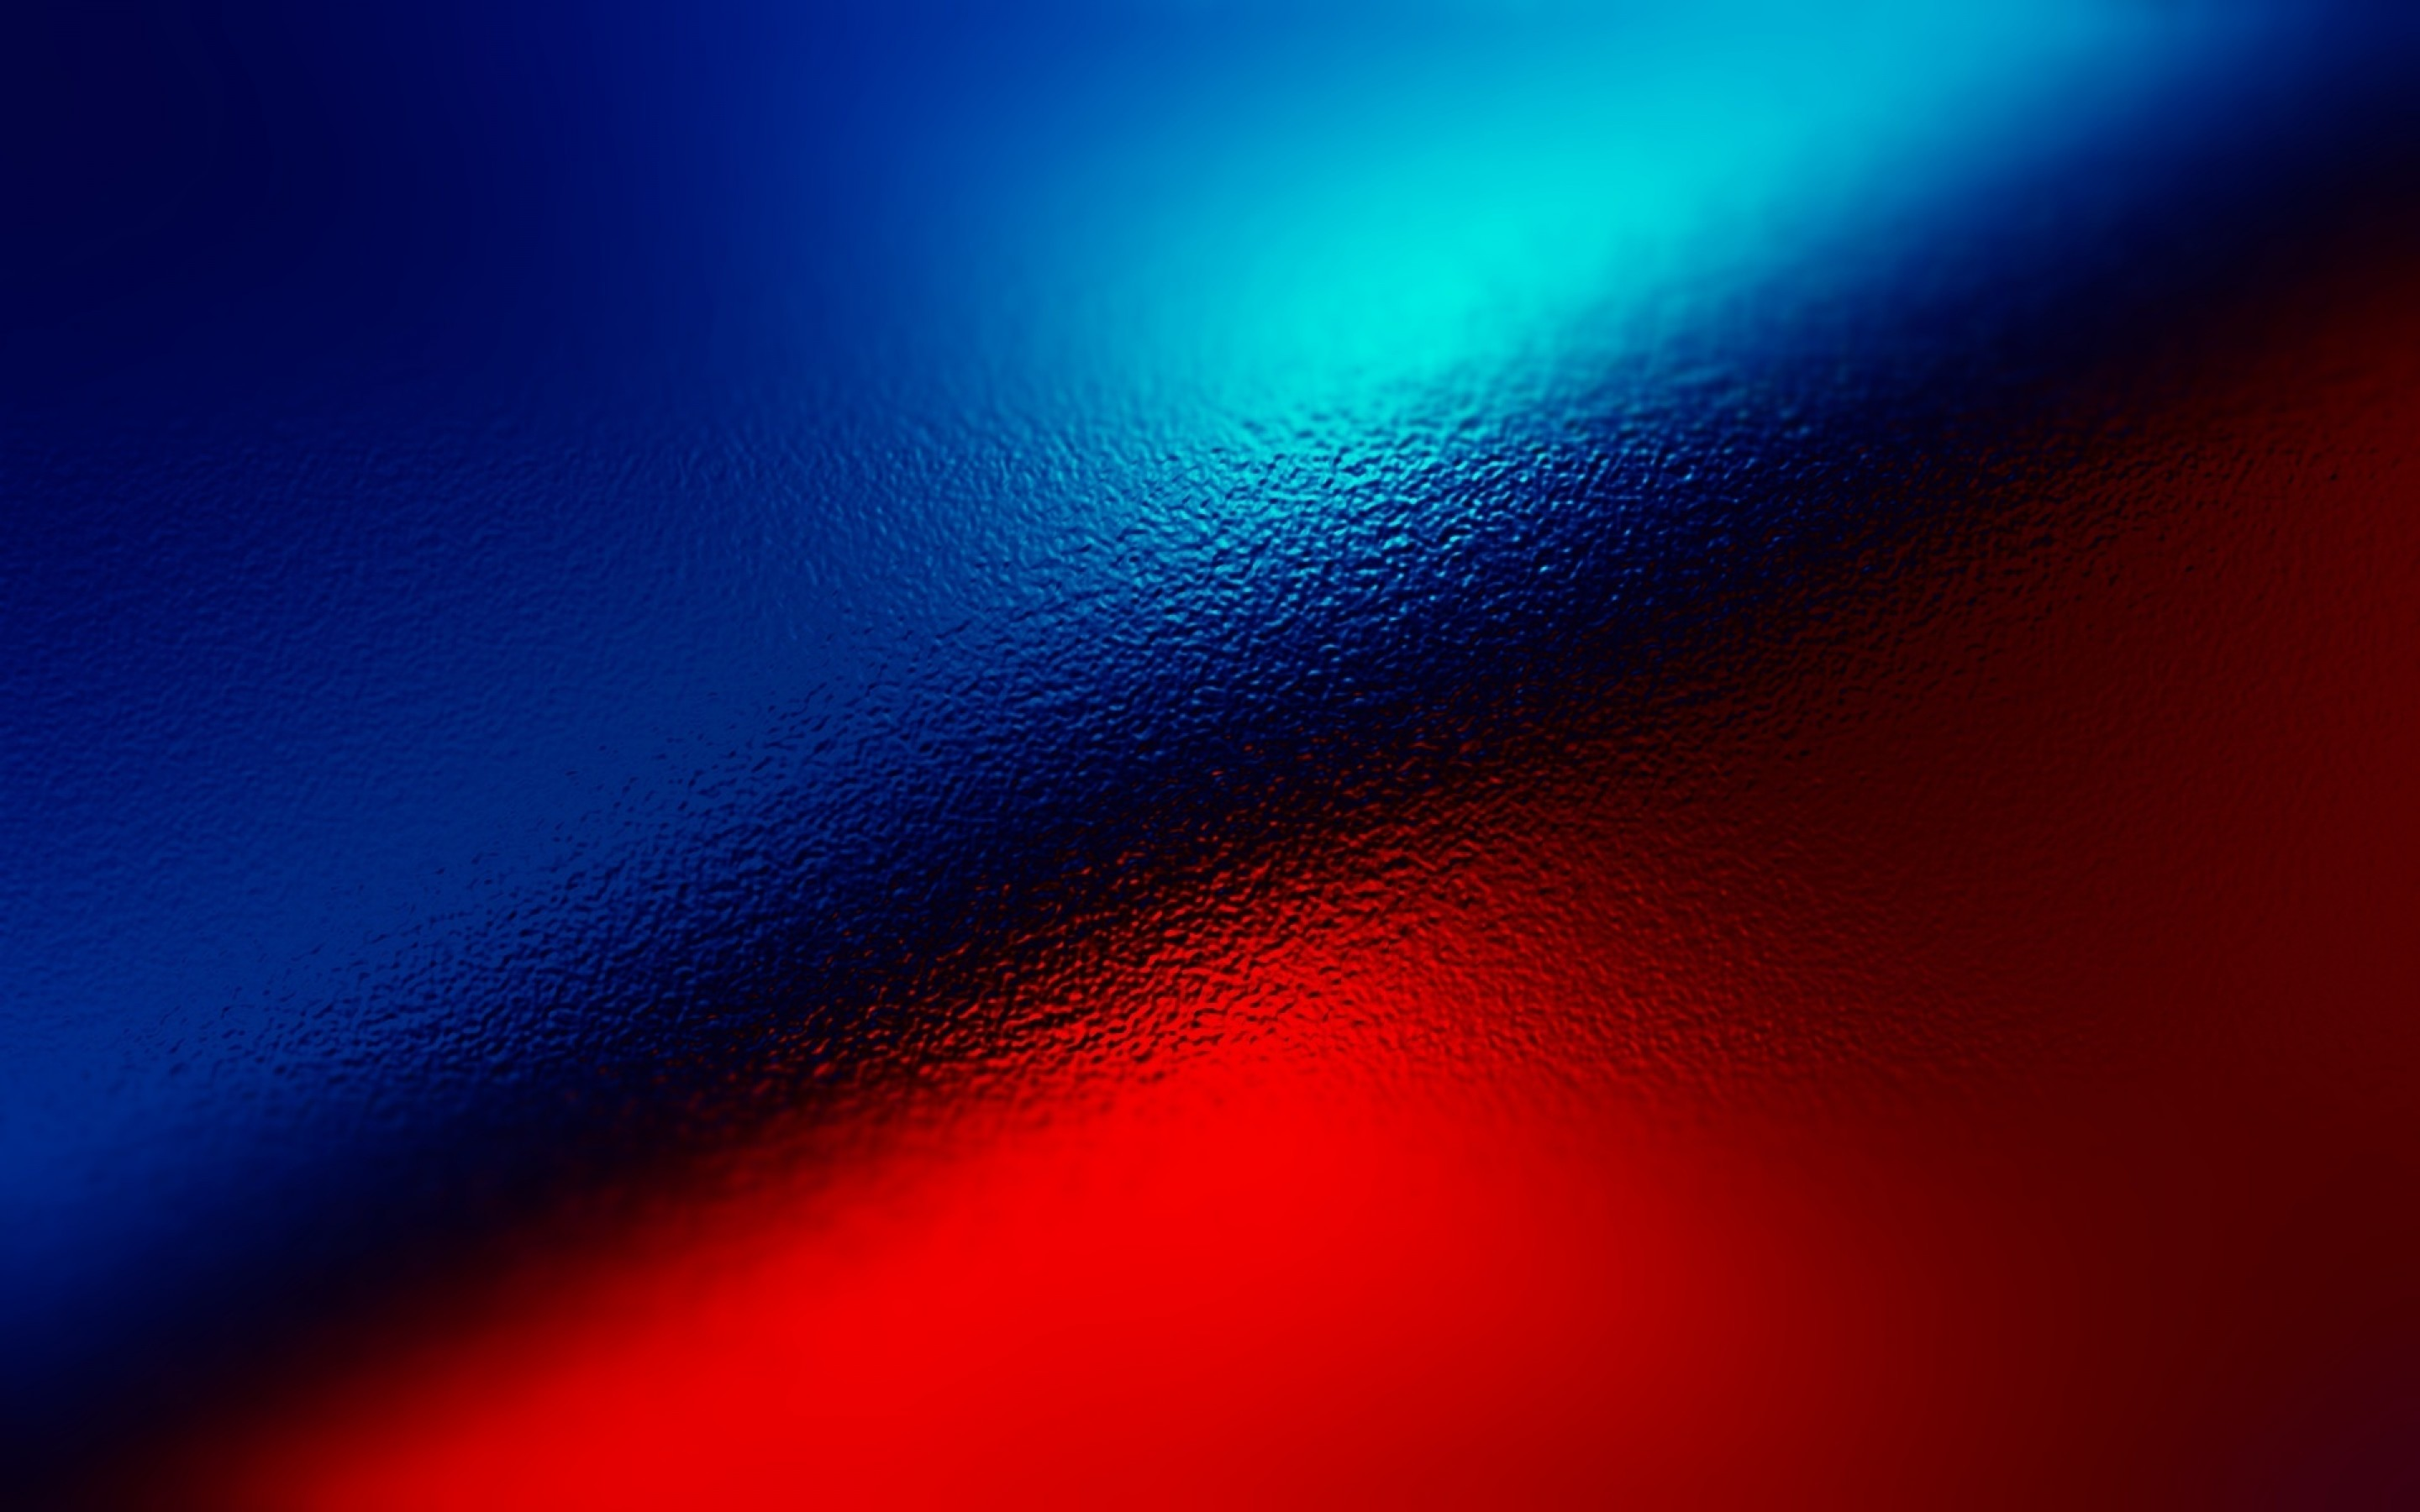 75 Super HD Texture Wallpapers